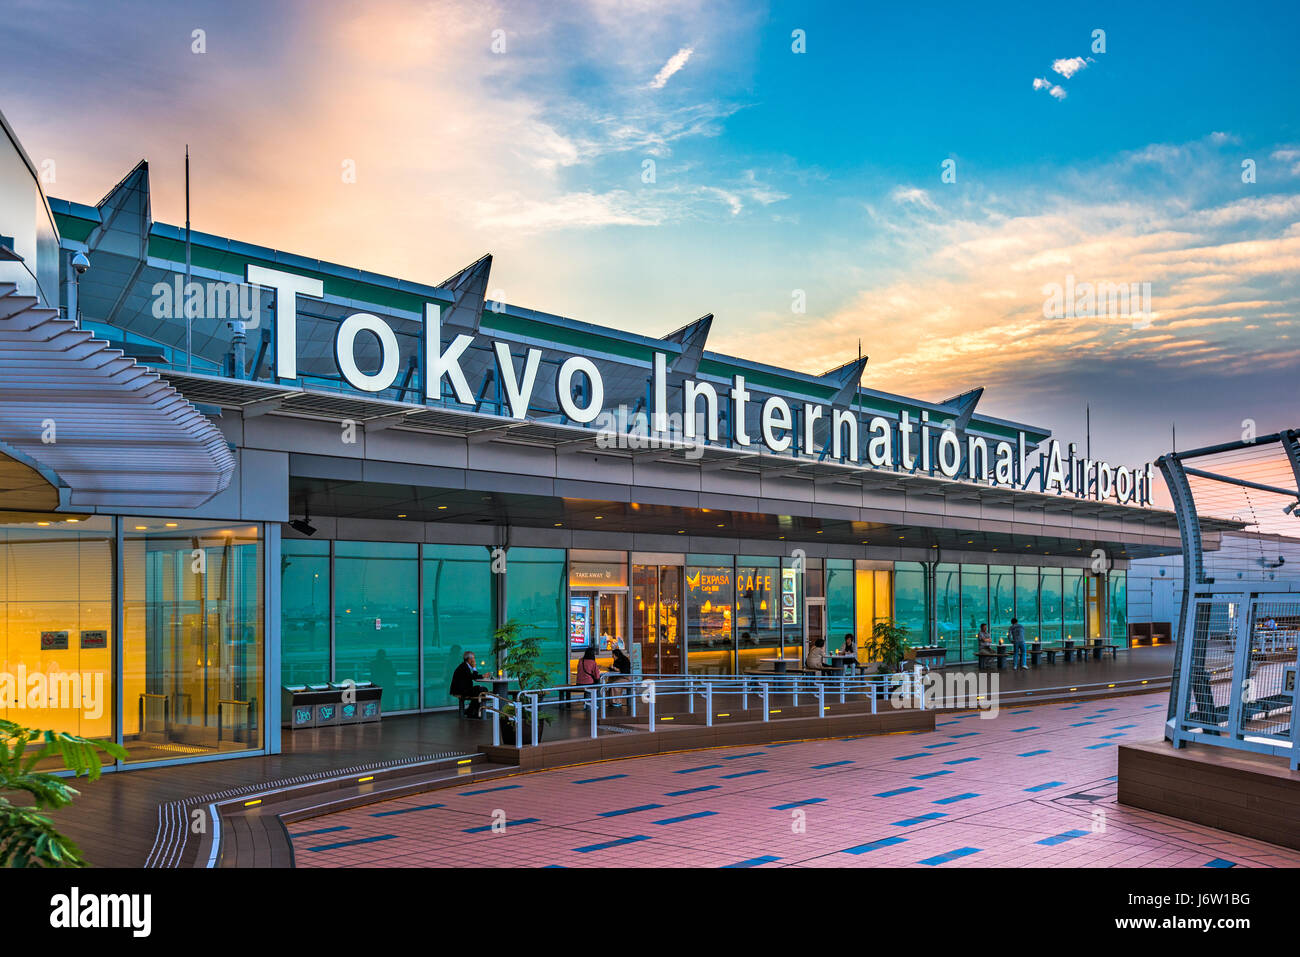 TOKYO, JAPAN - MAY 11, 2017: The exterior of Tokyo International Airport, better known as Haneda Airport. Haneda - Stock Image